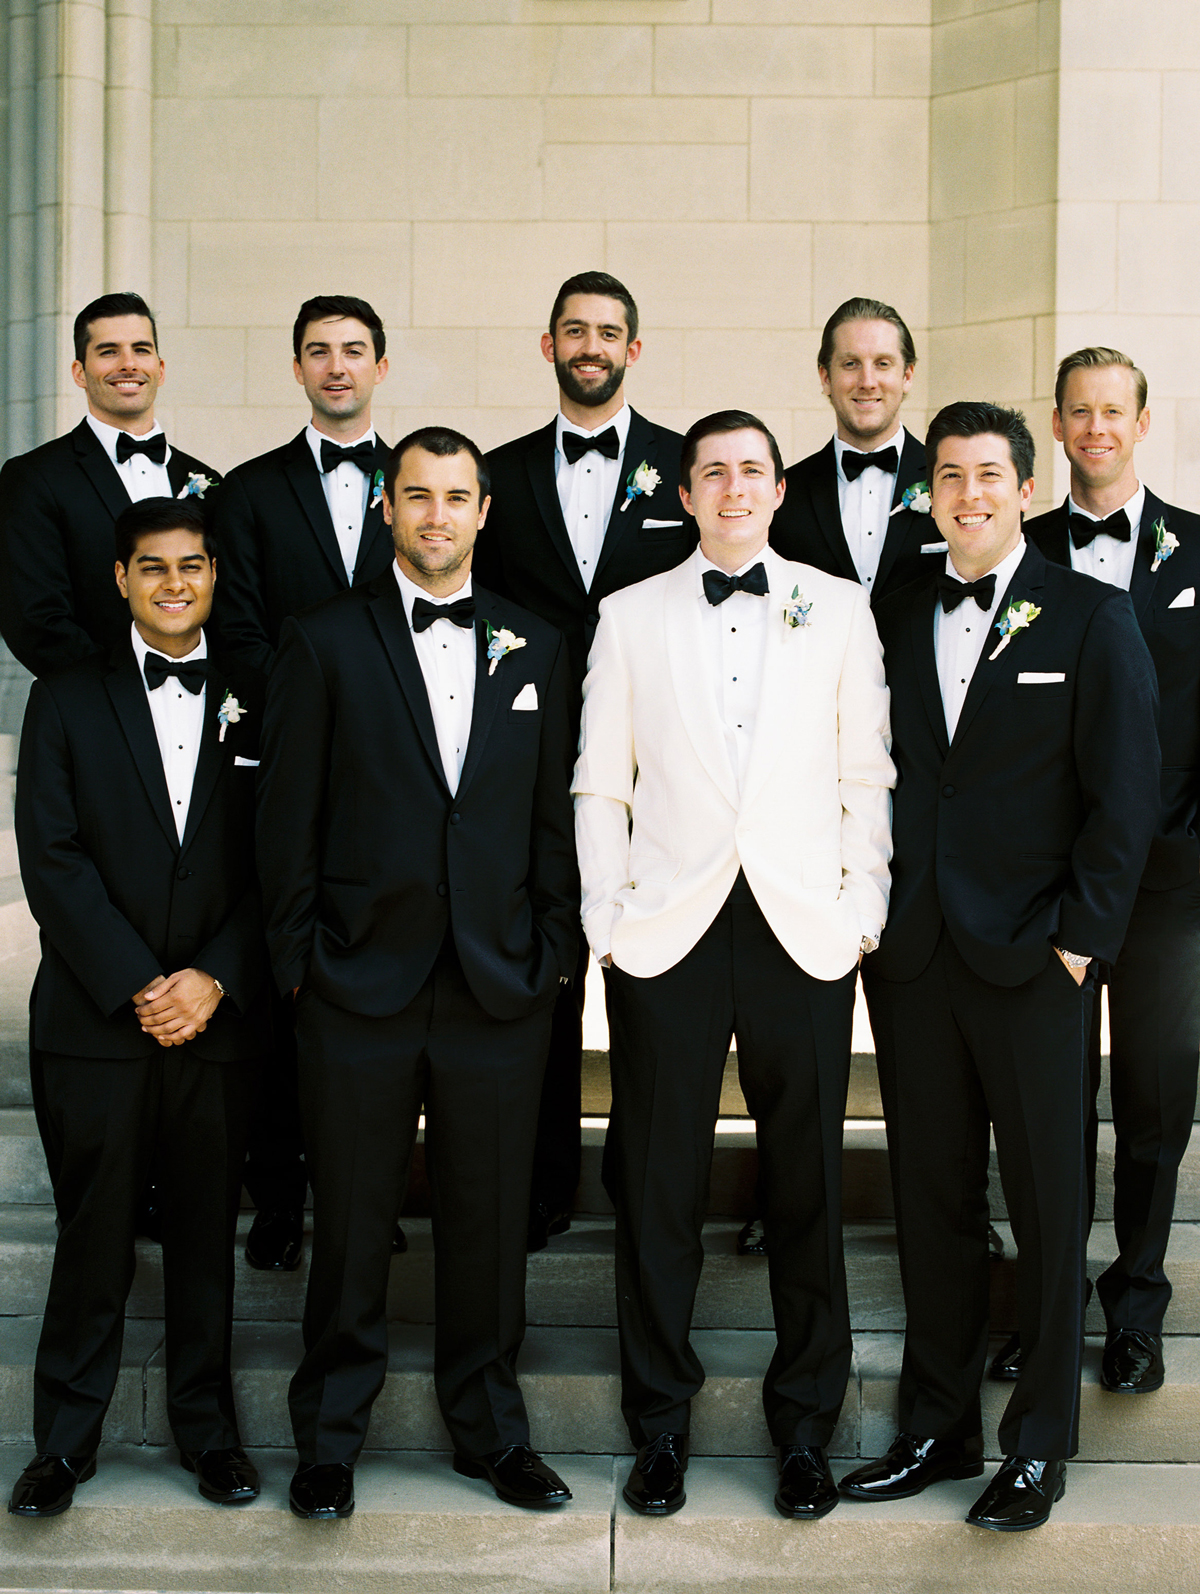 groomsmen wearing matching classic tuxedos standing with groom